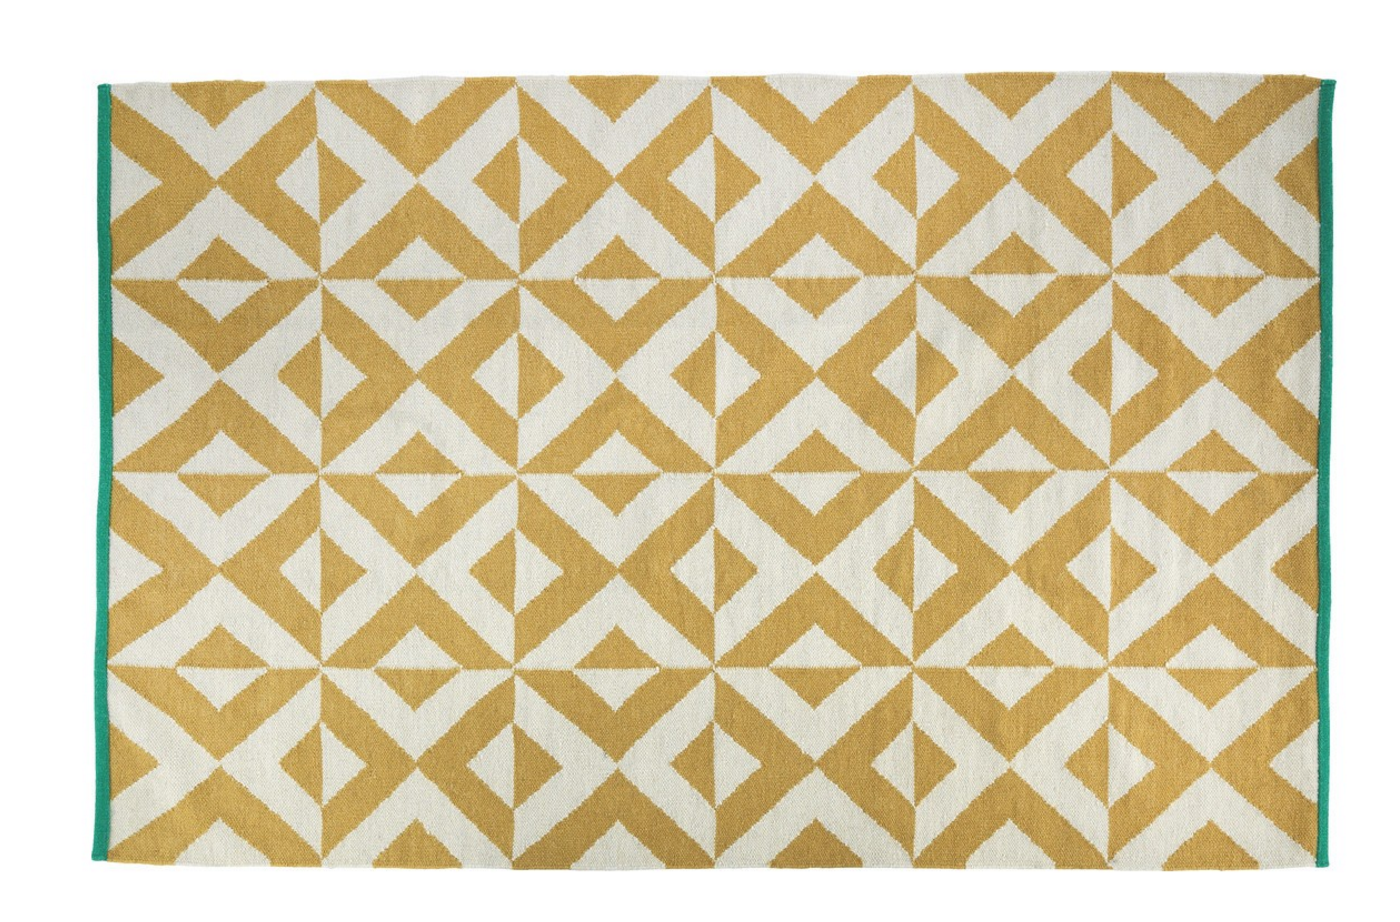 The Orissa Rug is available at Habitat now for £170.